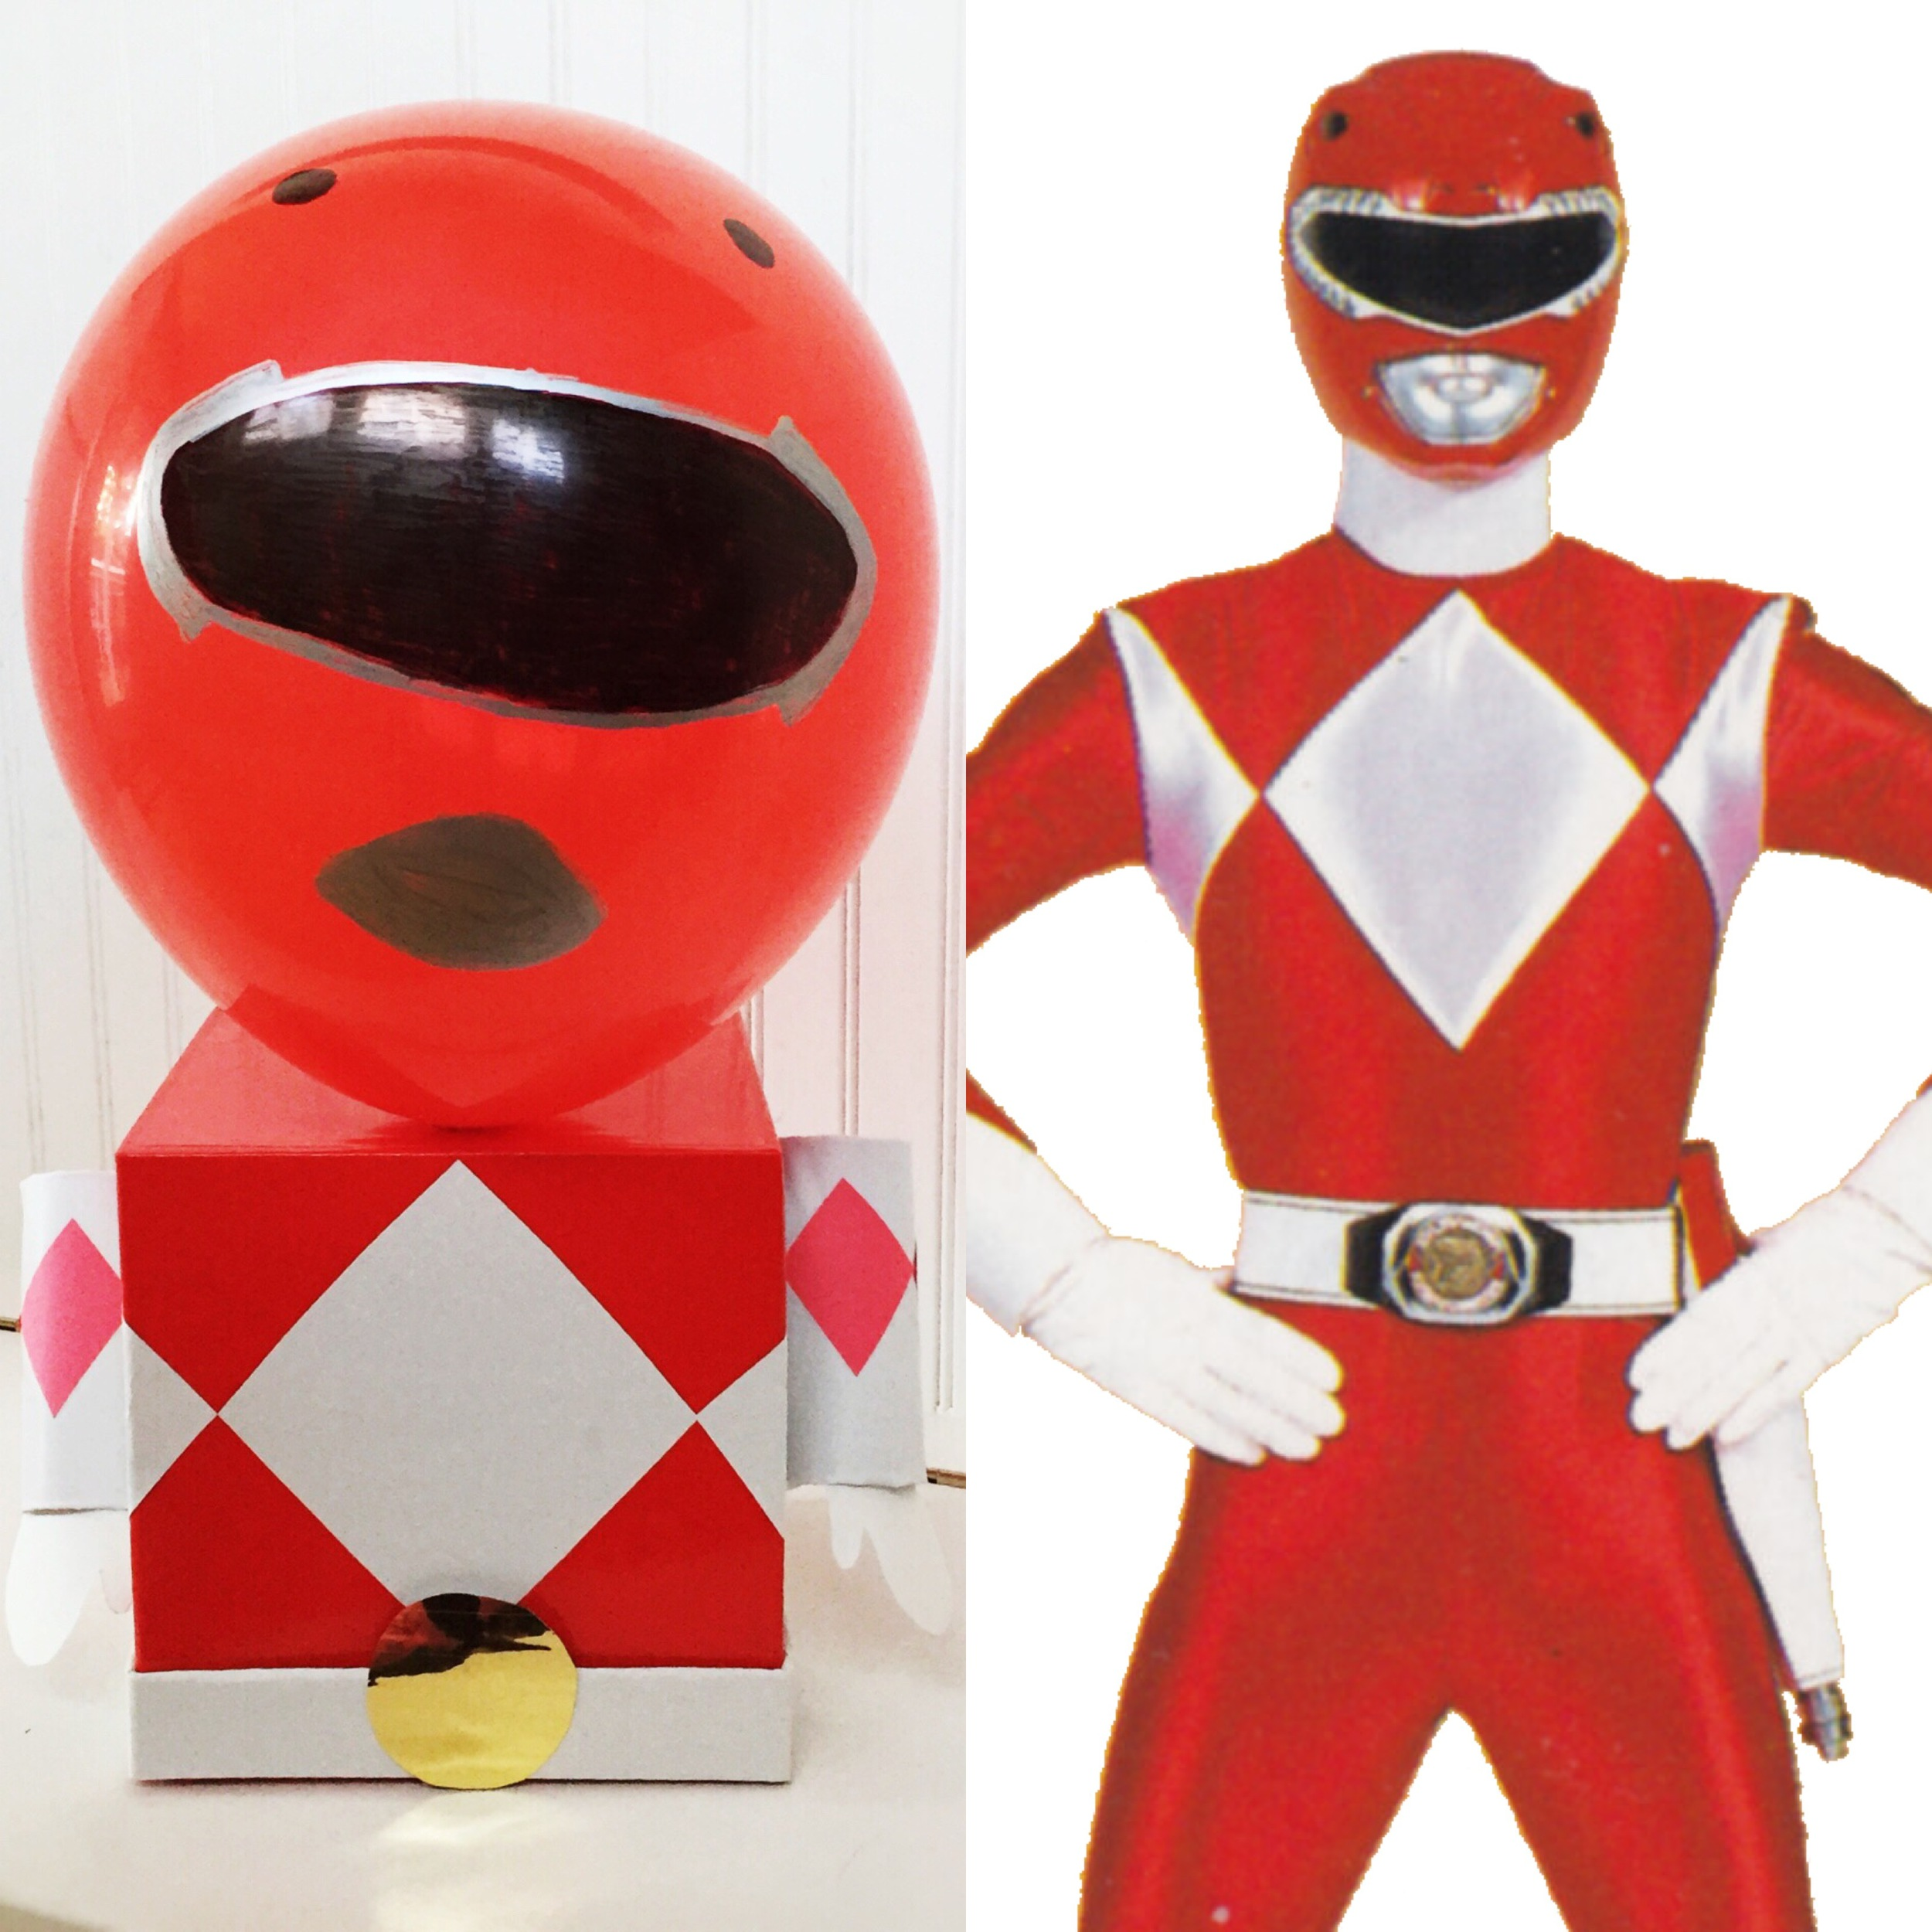 The finished box along with our Red Power Ranger inspiration pic.